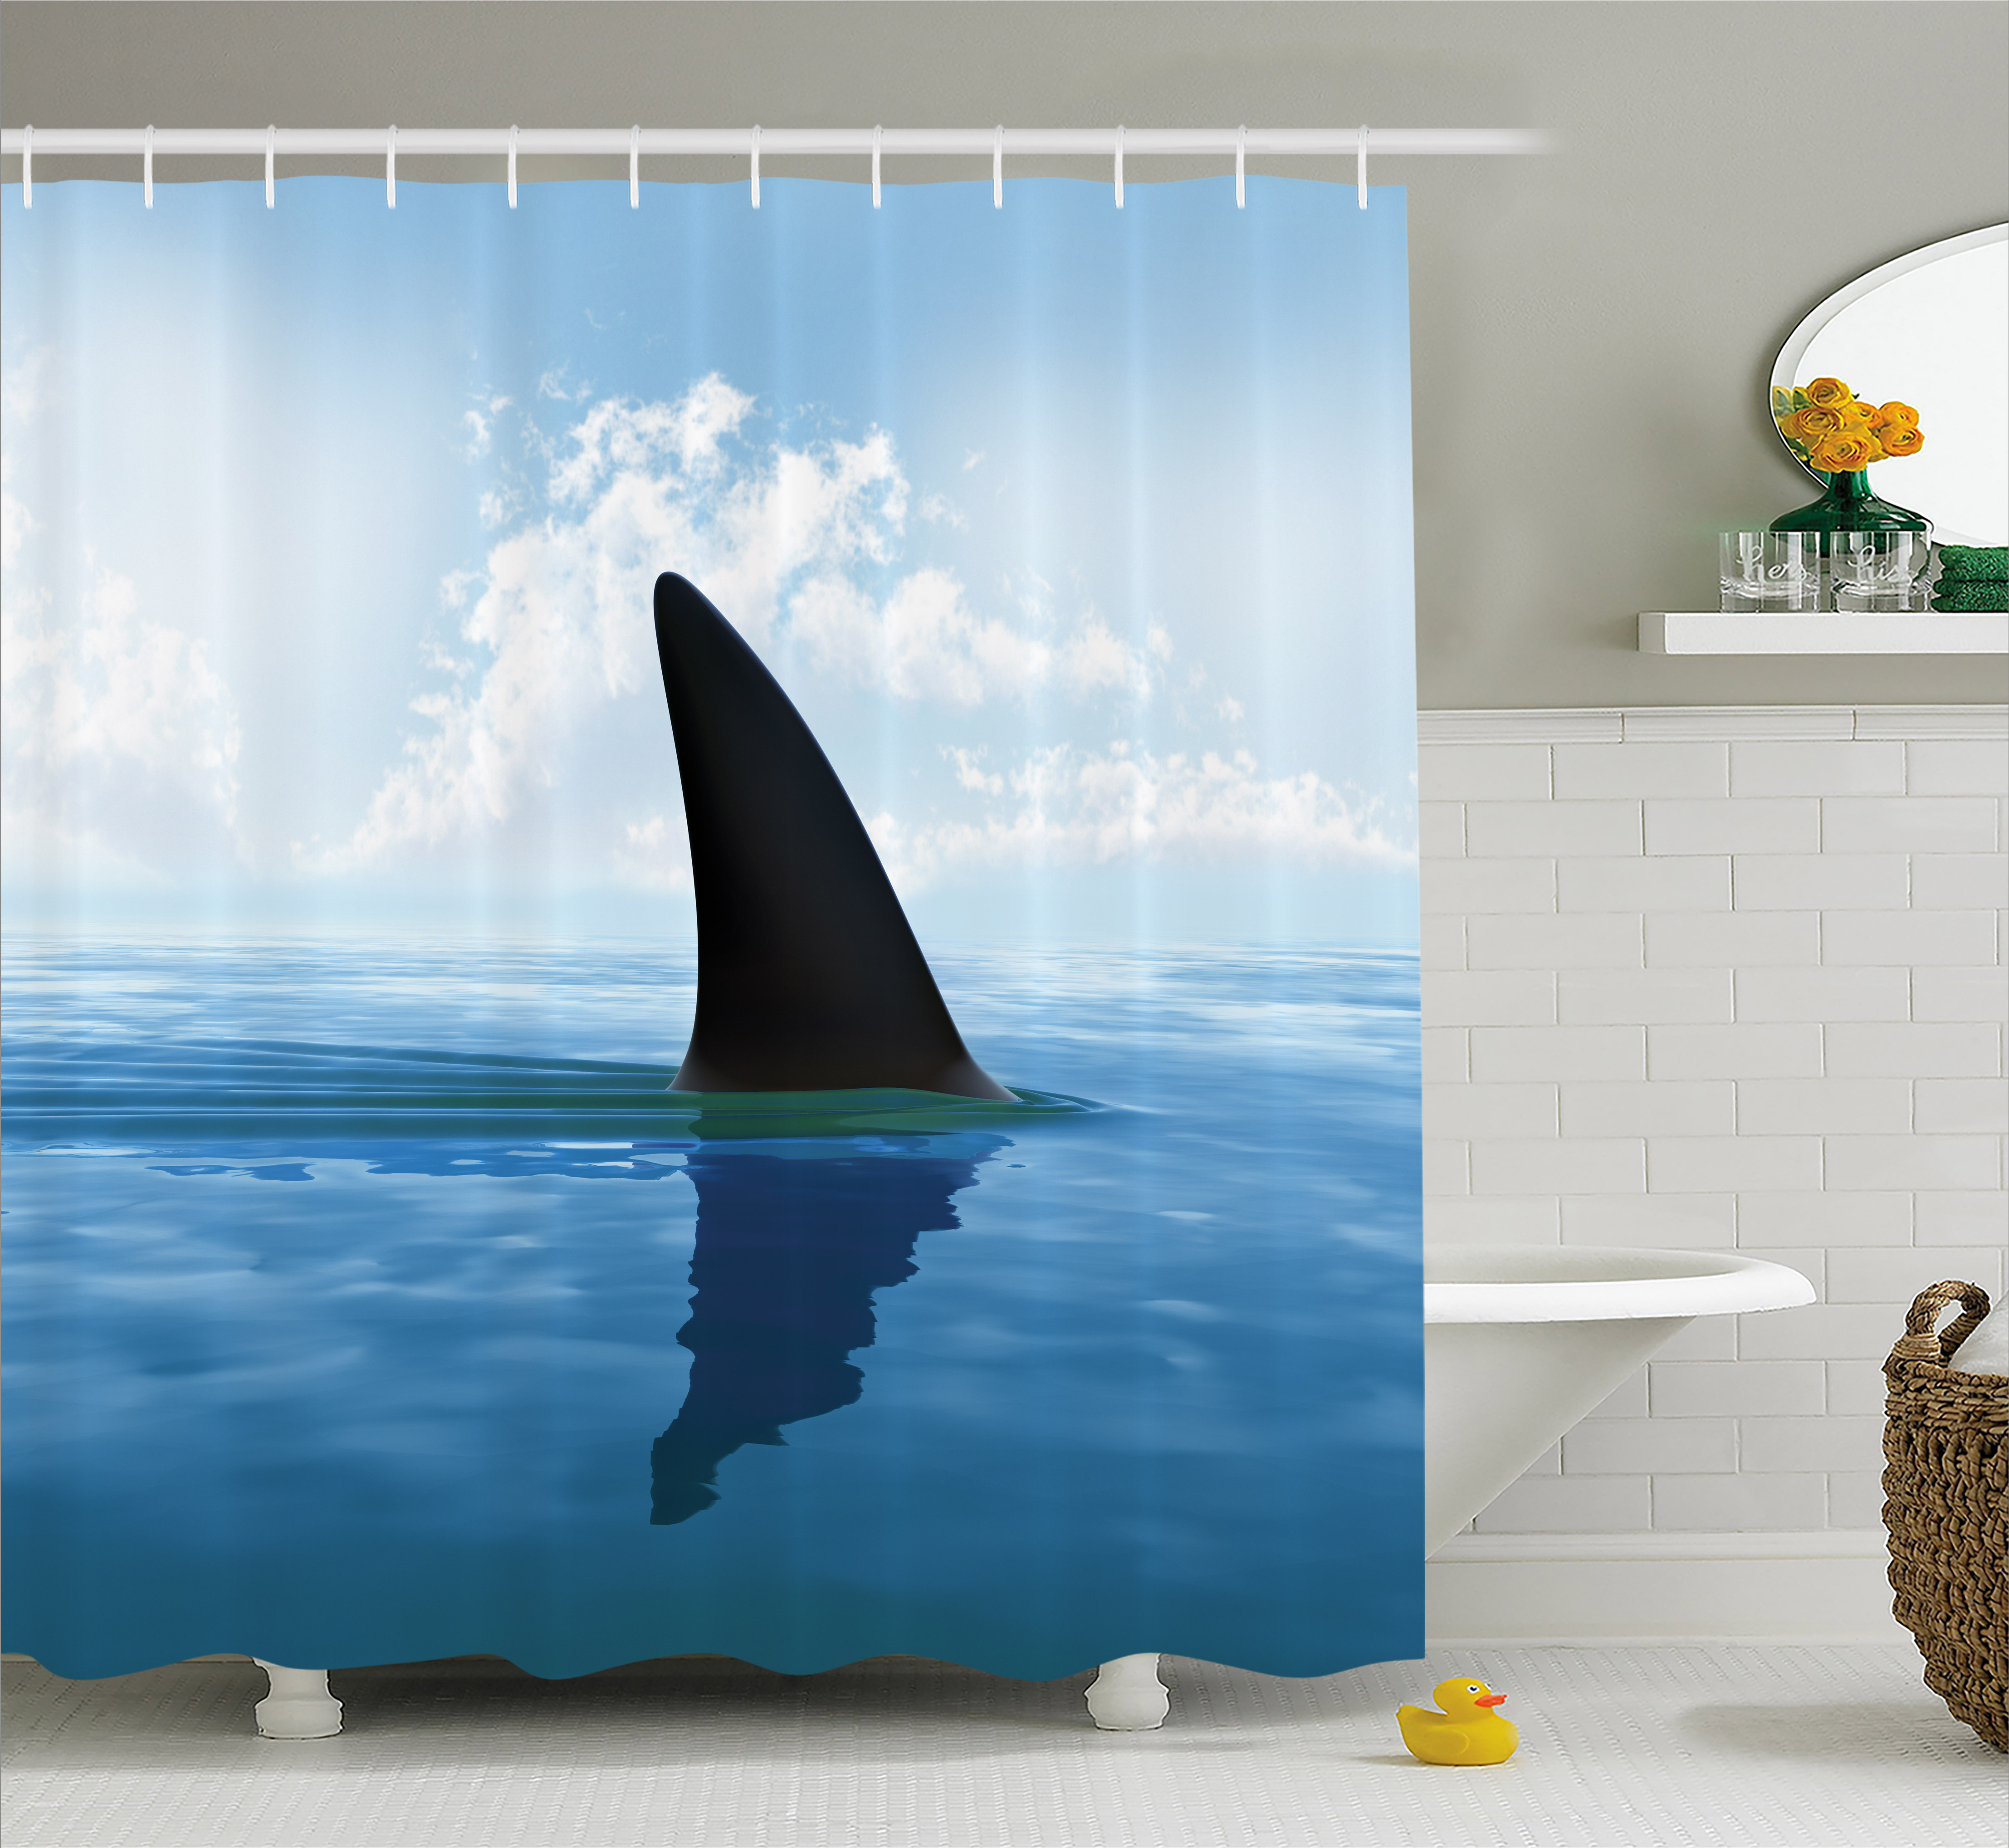 Shark Shower Curtain, Shark Fish Fin over the Sea Surface Danger Caution Themed Picture, Fabric Bathroom Set with Hooks, 69W X 70L Inches, Grey Violet and Light Blue, by Ambesonne